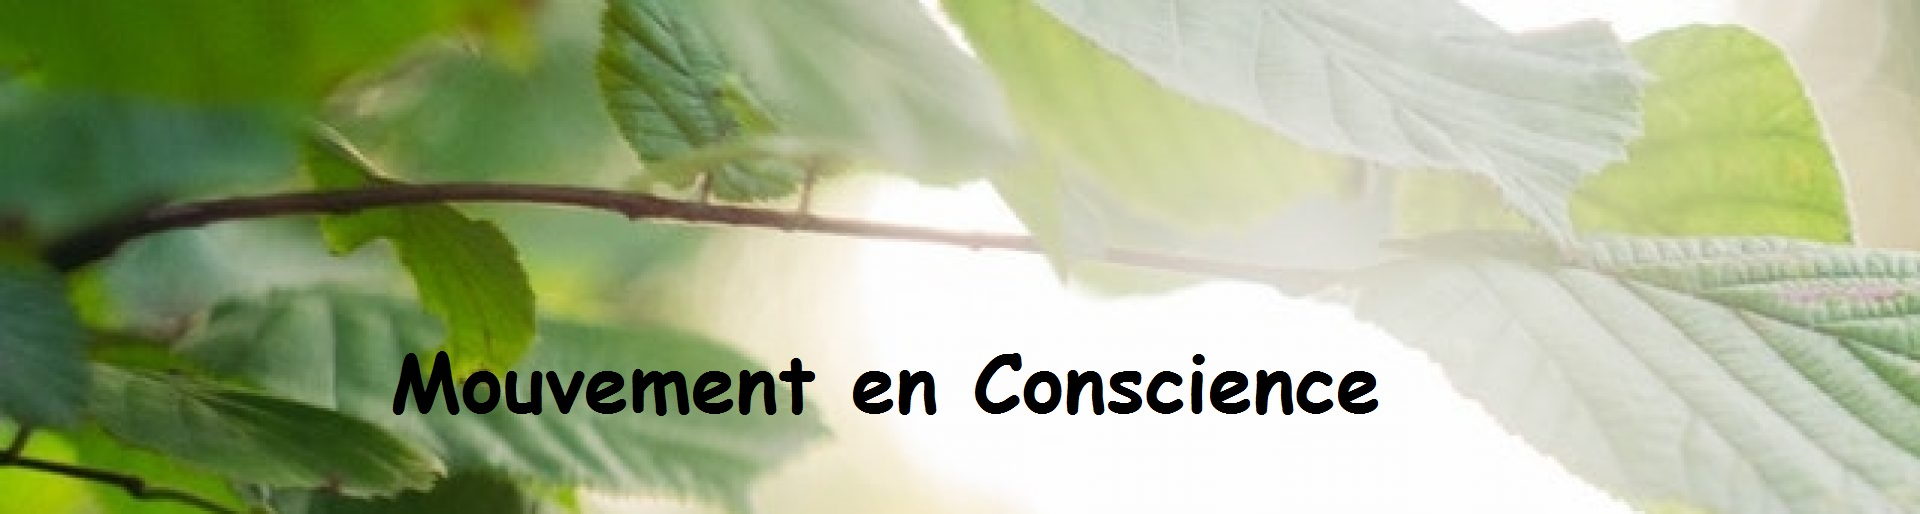 Mouvement en Conscience